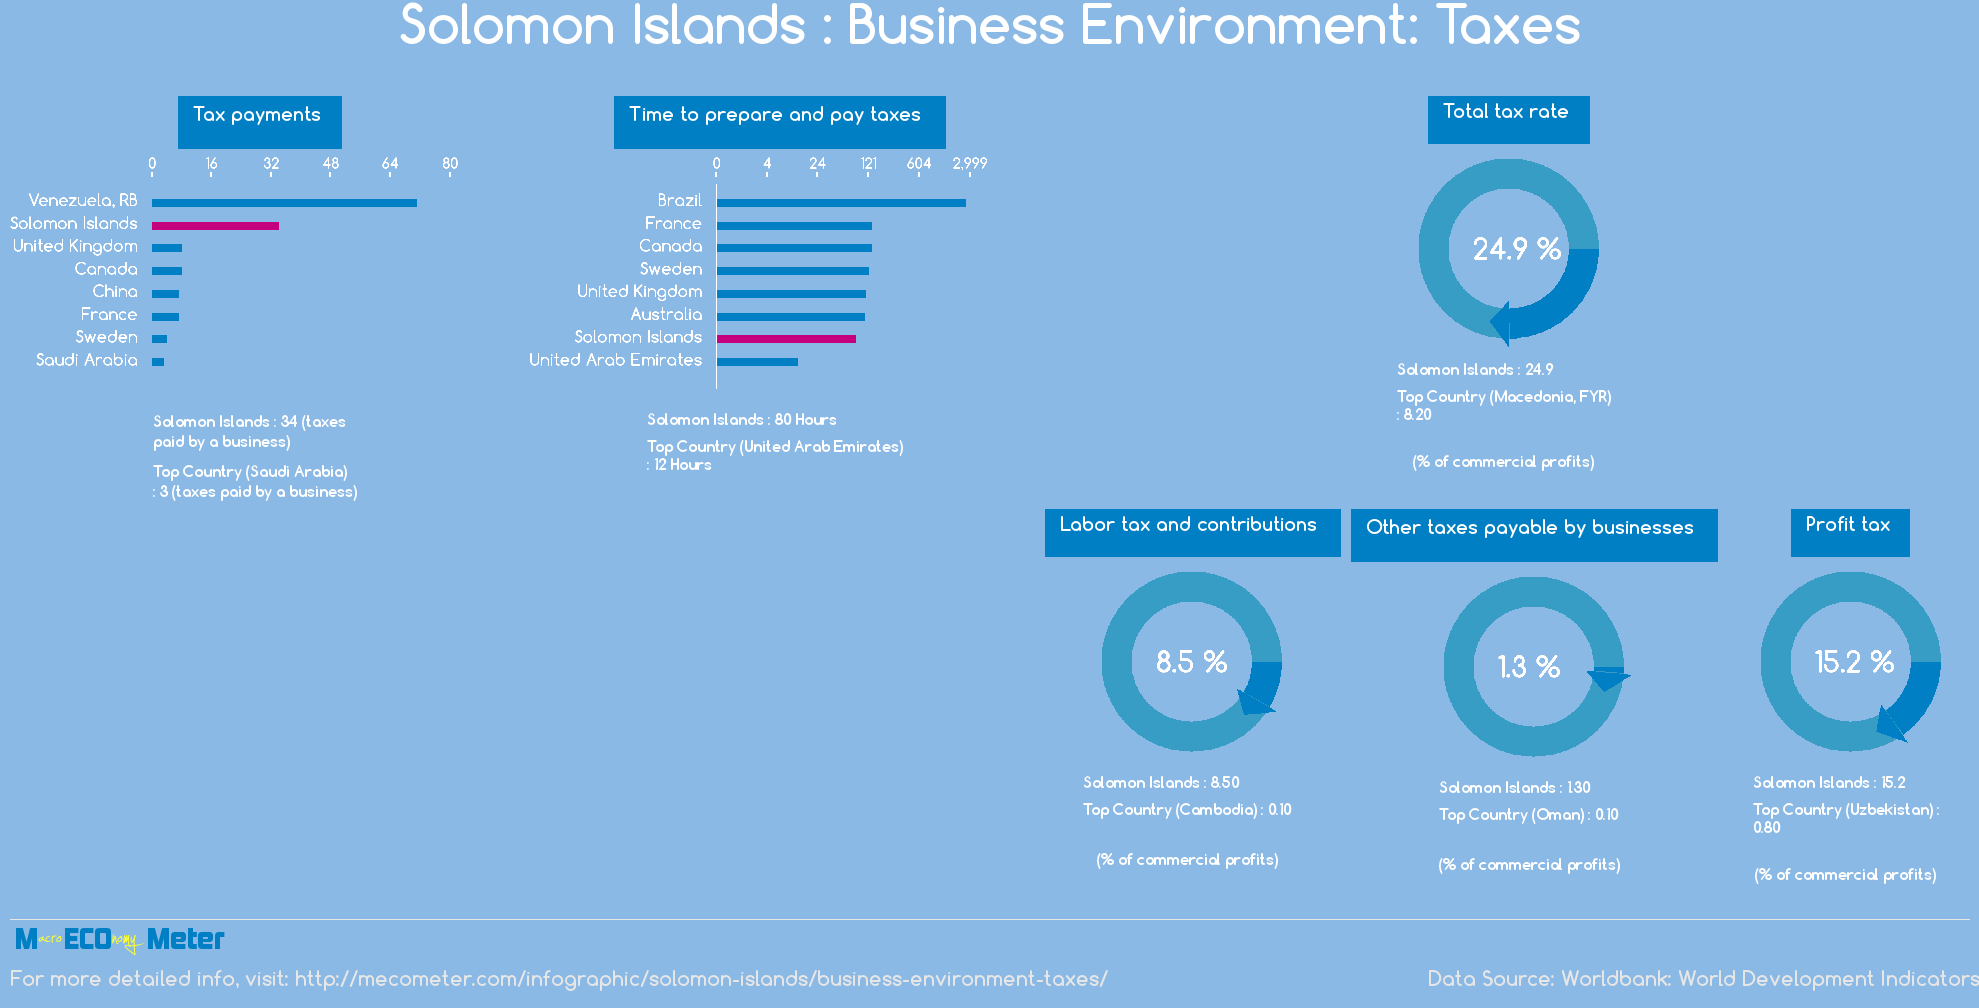 Solomon Islands : Business Environment: Taxes